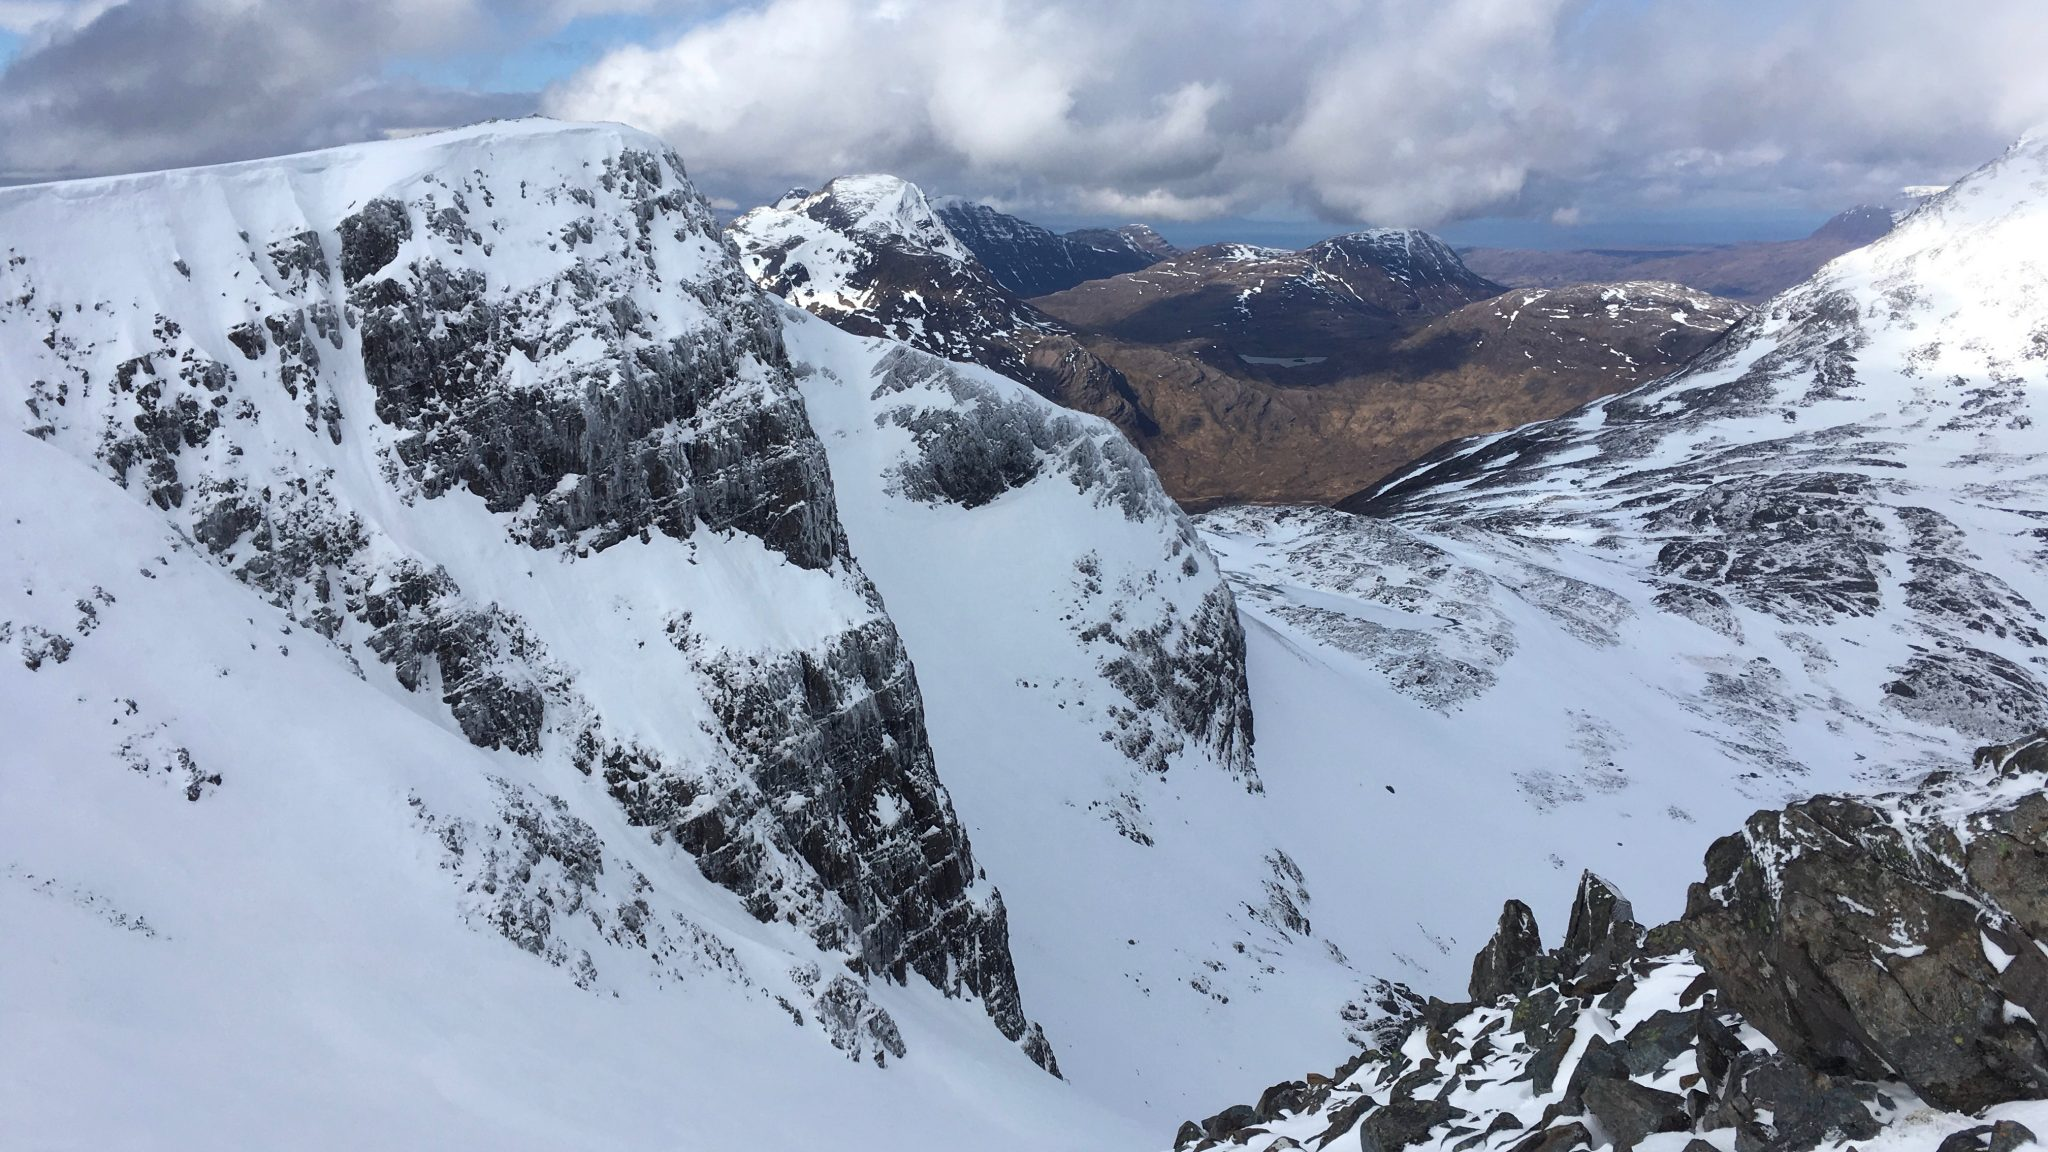 Winter navigation courses give you the skills to find your way through dangerous terrain like these steep cliffs in the Scottish Highlands